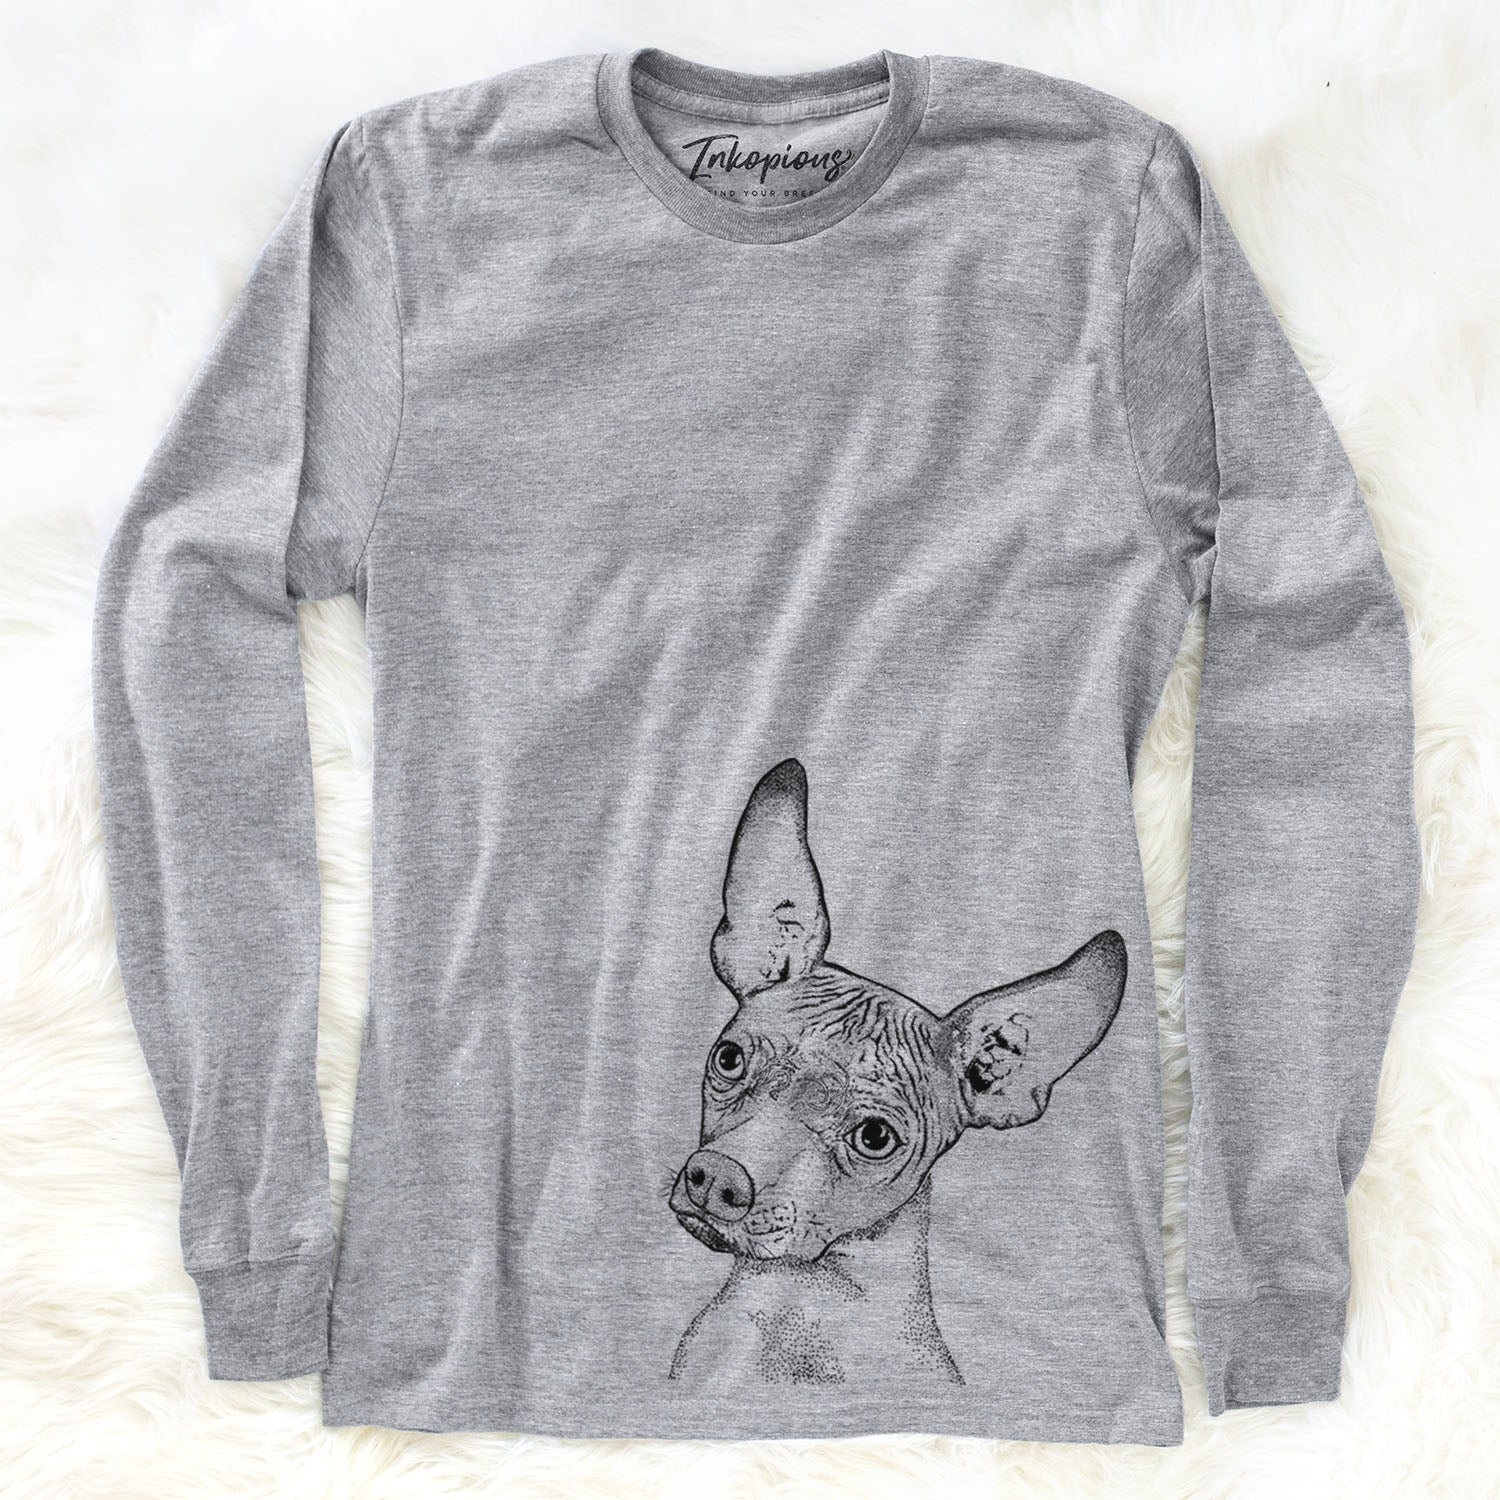 Kahlo the Xoloitzcuintli - Long Sleeve Crewneck